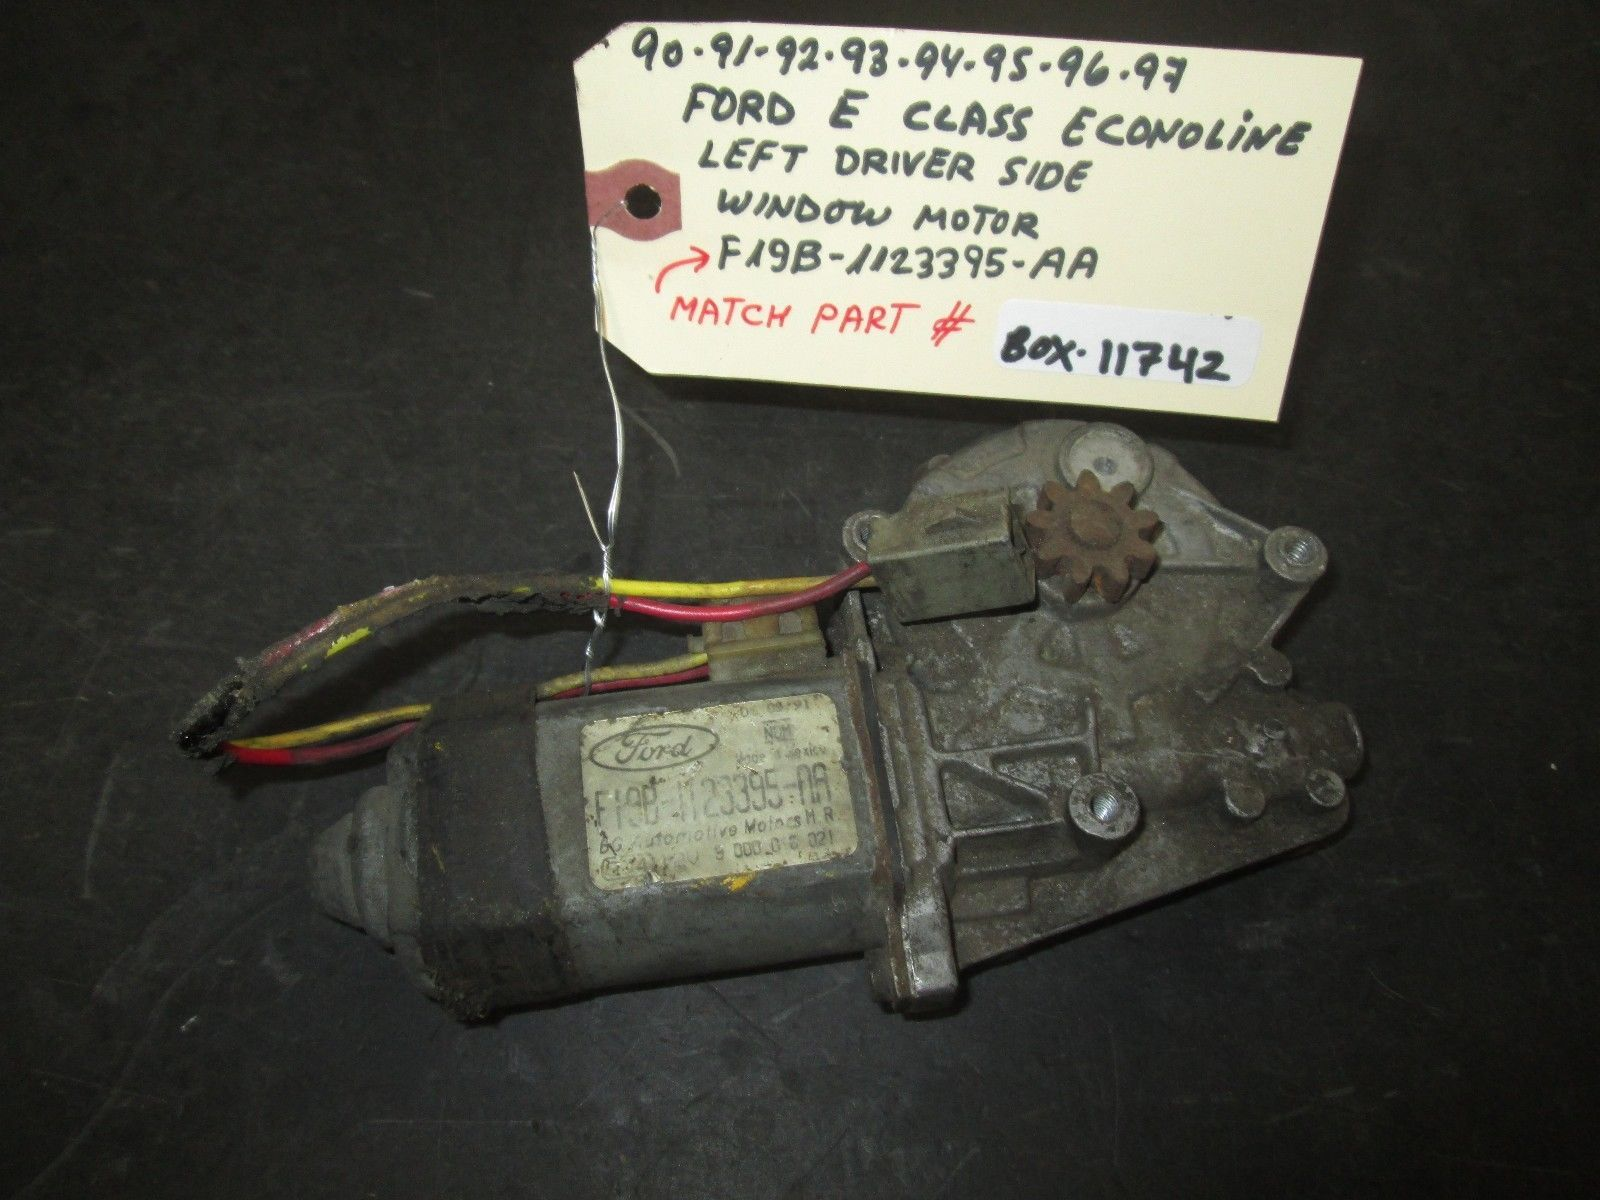 Primary image for 90 91 92 93 94 95 96 97 FORD E CLASS ECONOLINE LEFT DRIVER SIDE WINDOW MOTOR